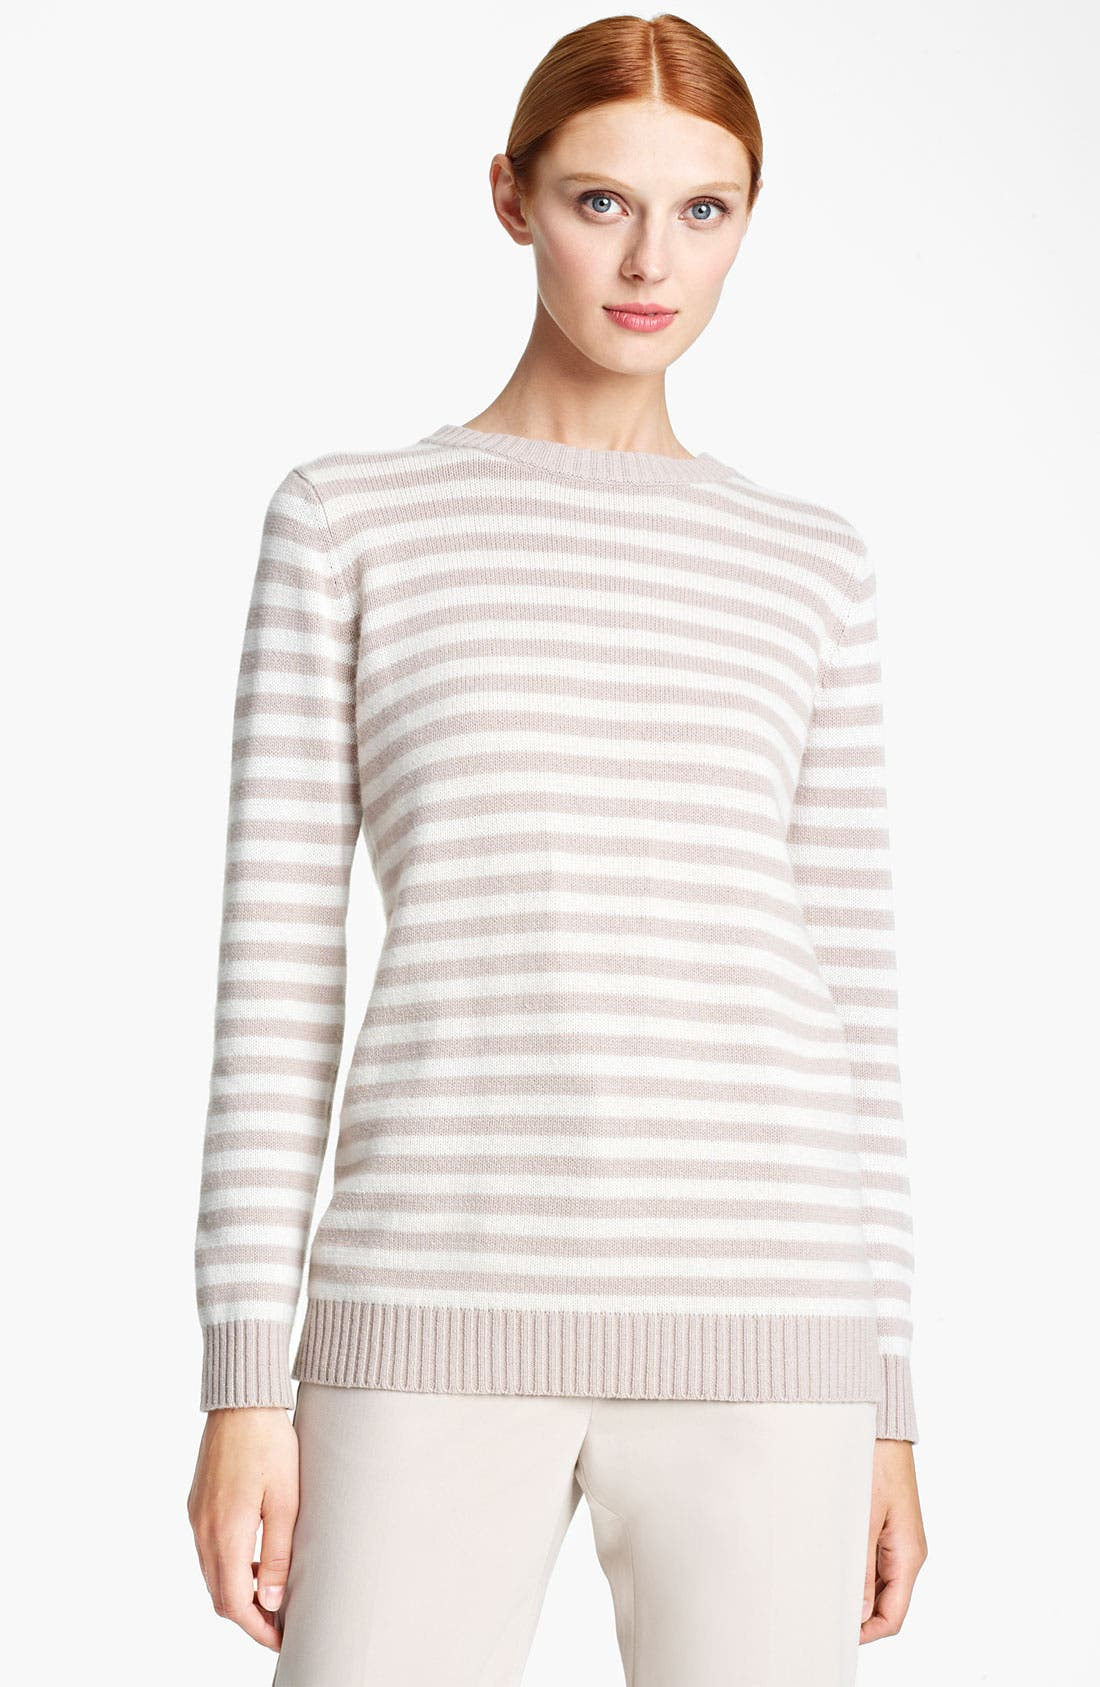 Alternate Image 1 Selected - Max Mara 'Auronzo' Striped Cashmere & Cotton Sweater